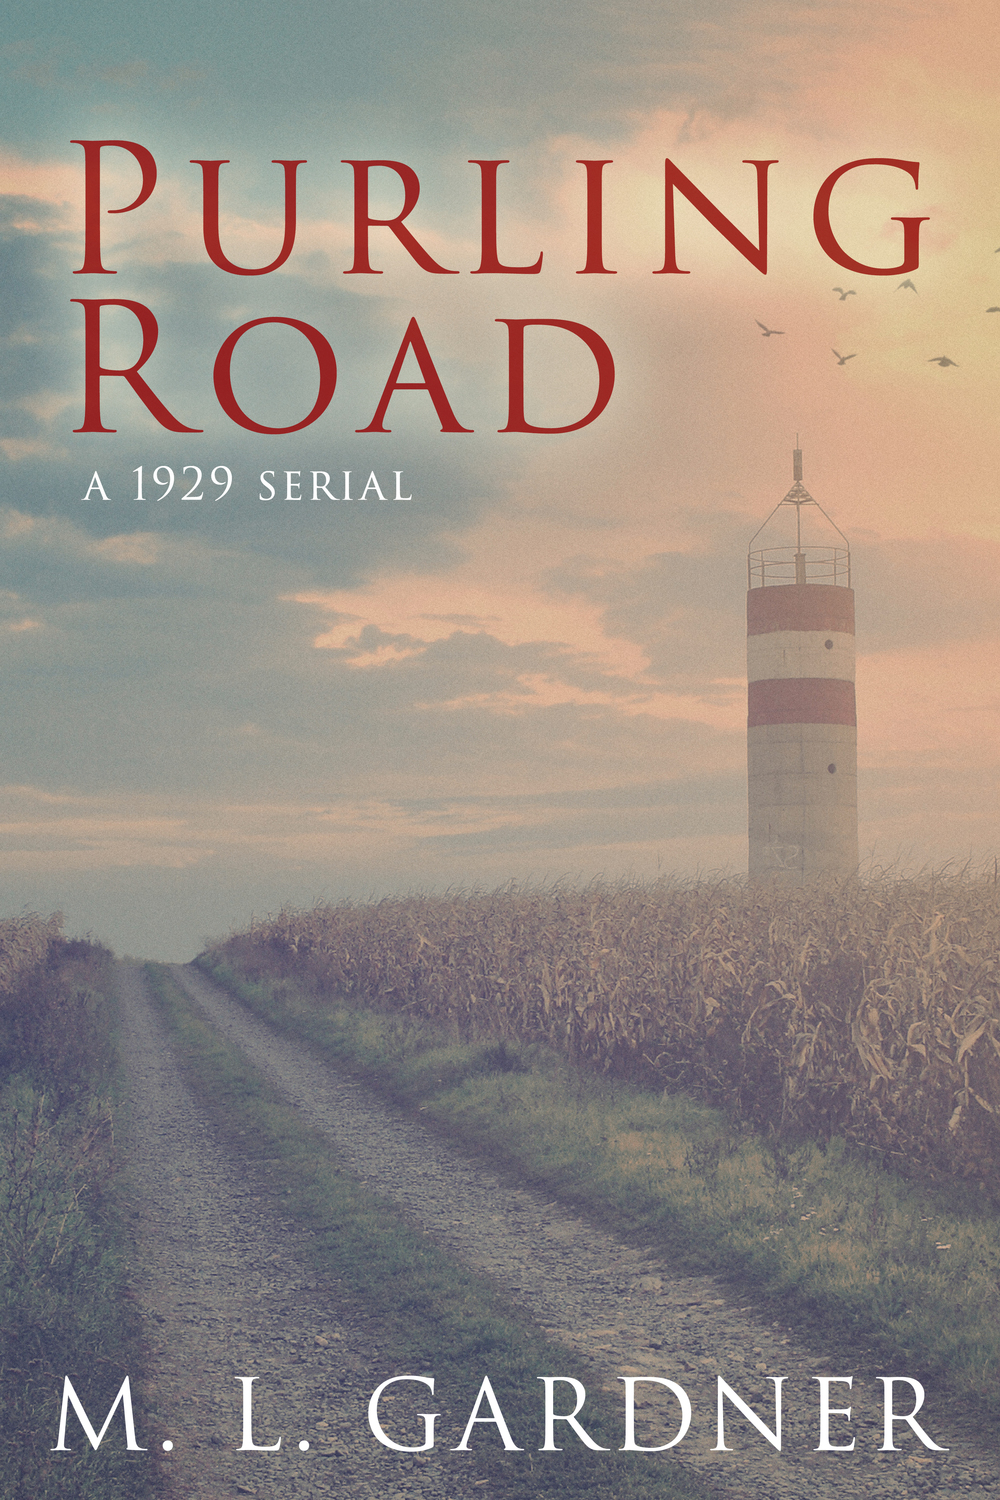 Purling Road, A 1929 Serial